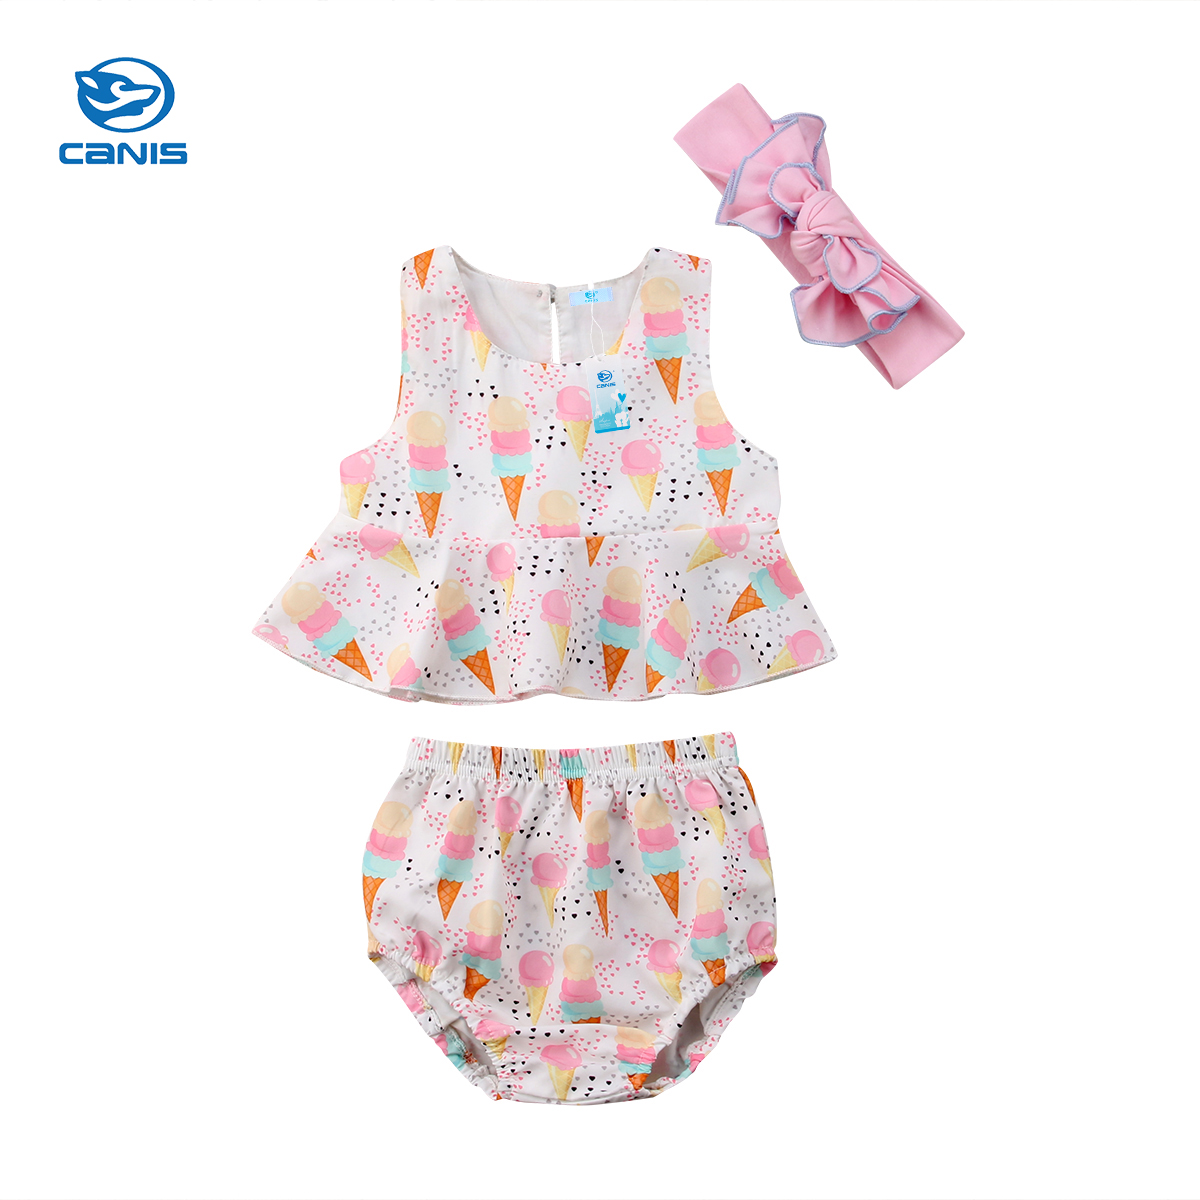 3pcs Girl Clothes Newborn Baby Girl Clothes Ice Cream Tops Briefs Shorts Outfit Sunsuit 0-24M